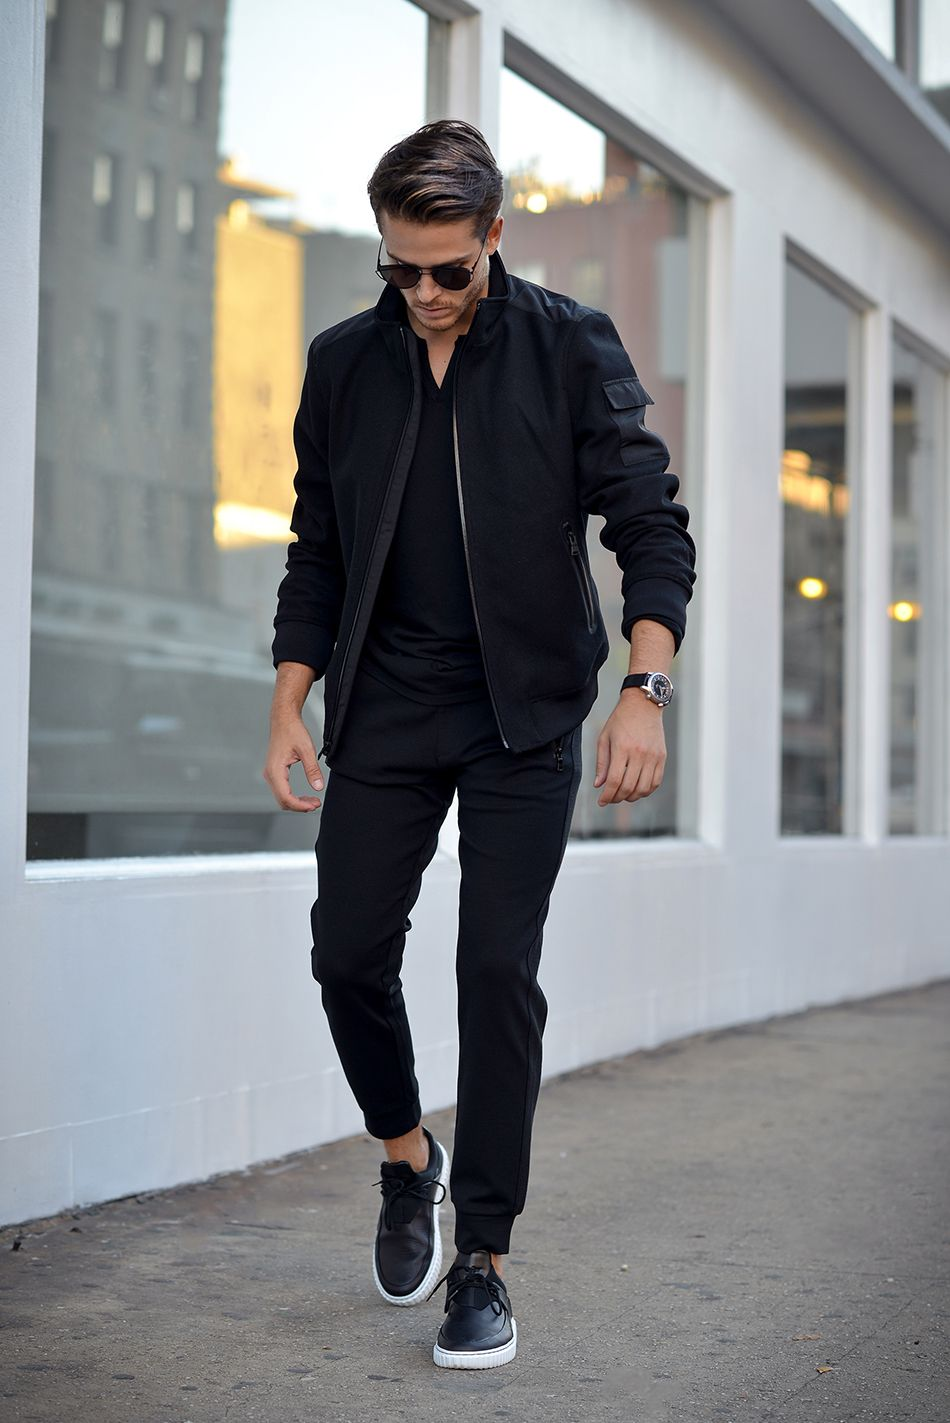 Black on Black | Men's Casual Outfit | Bomber Jacket | Shop ...